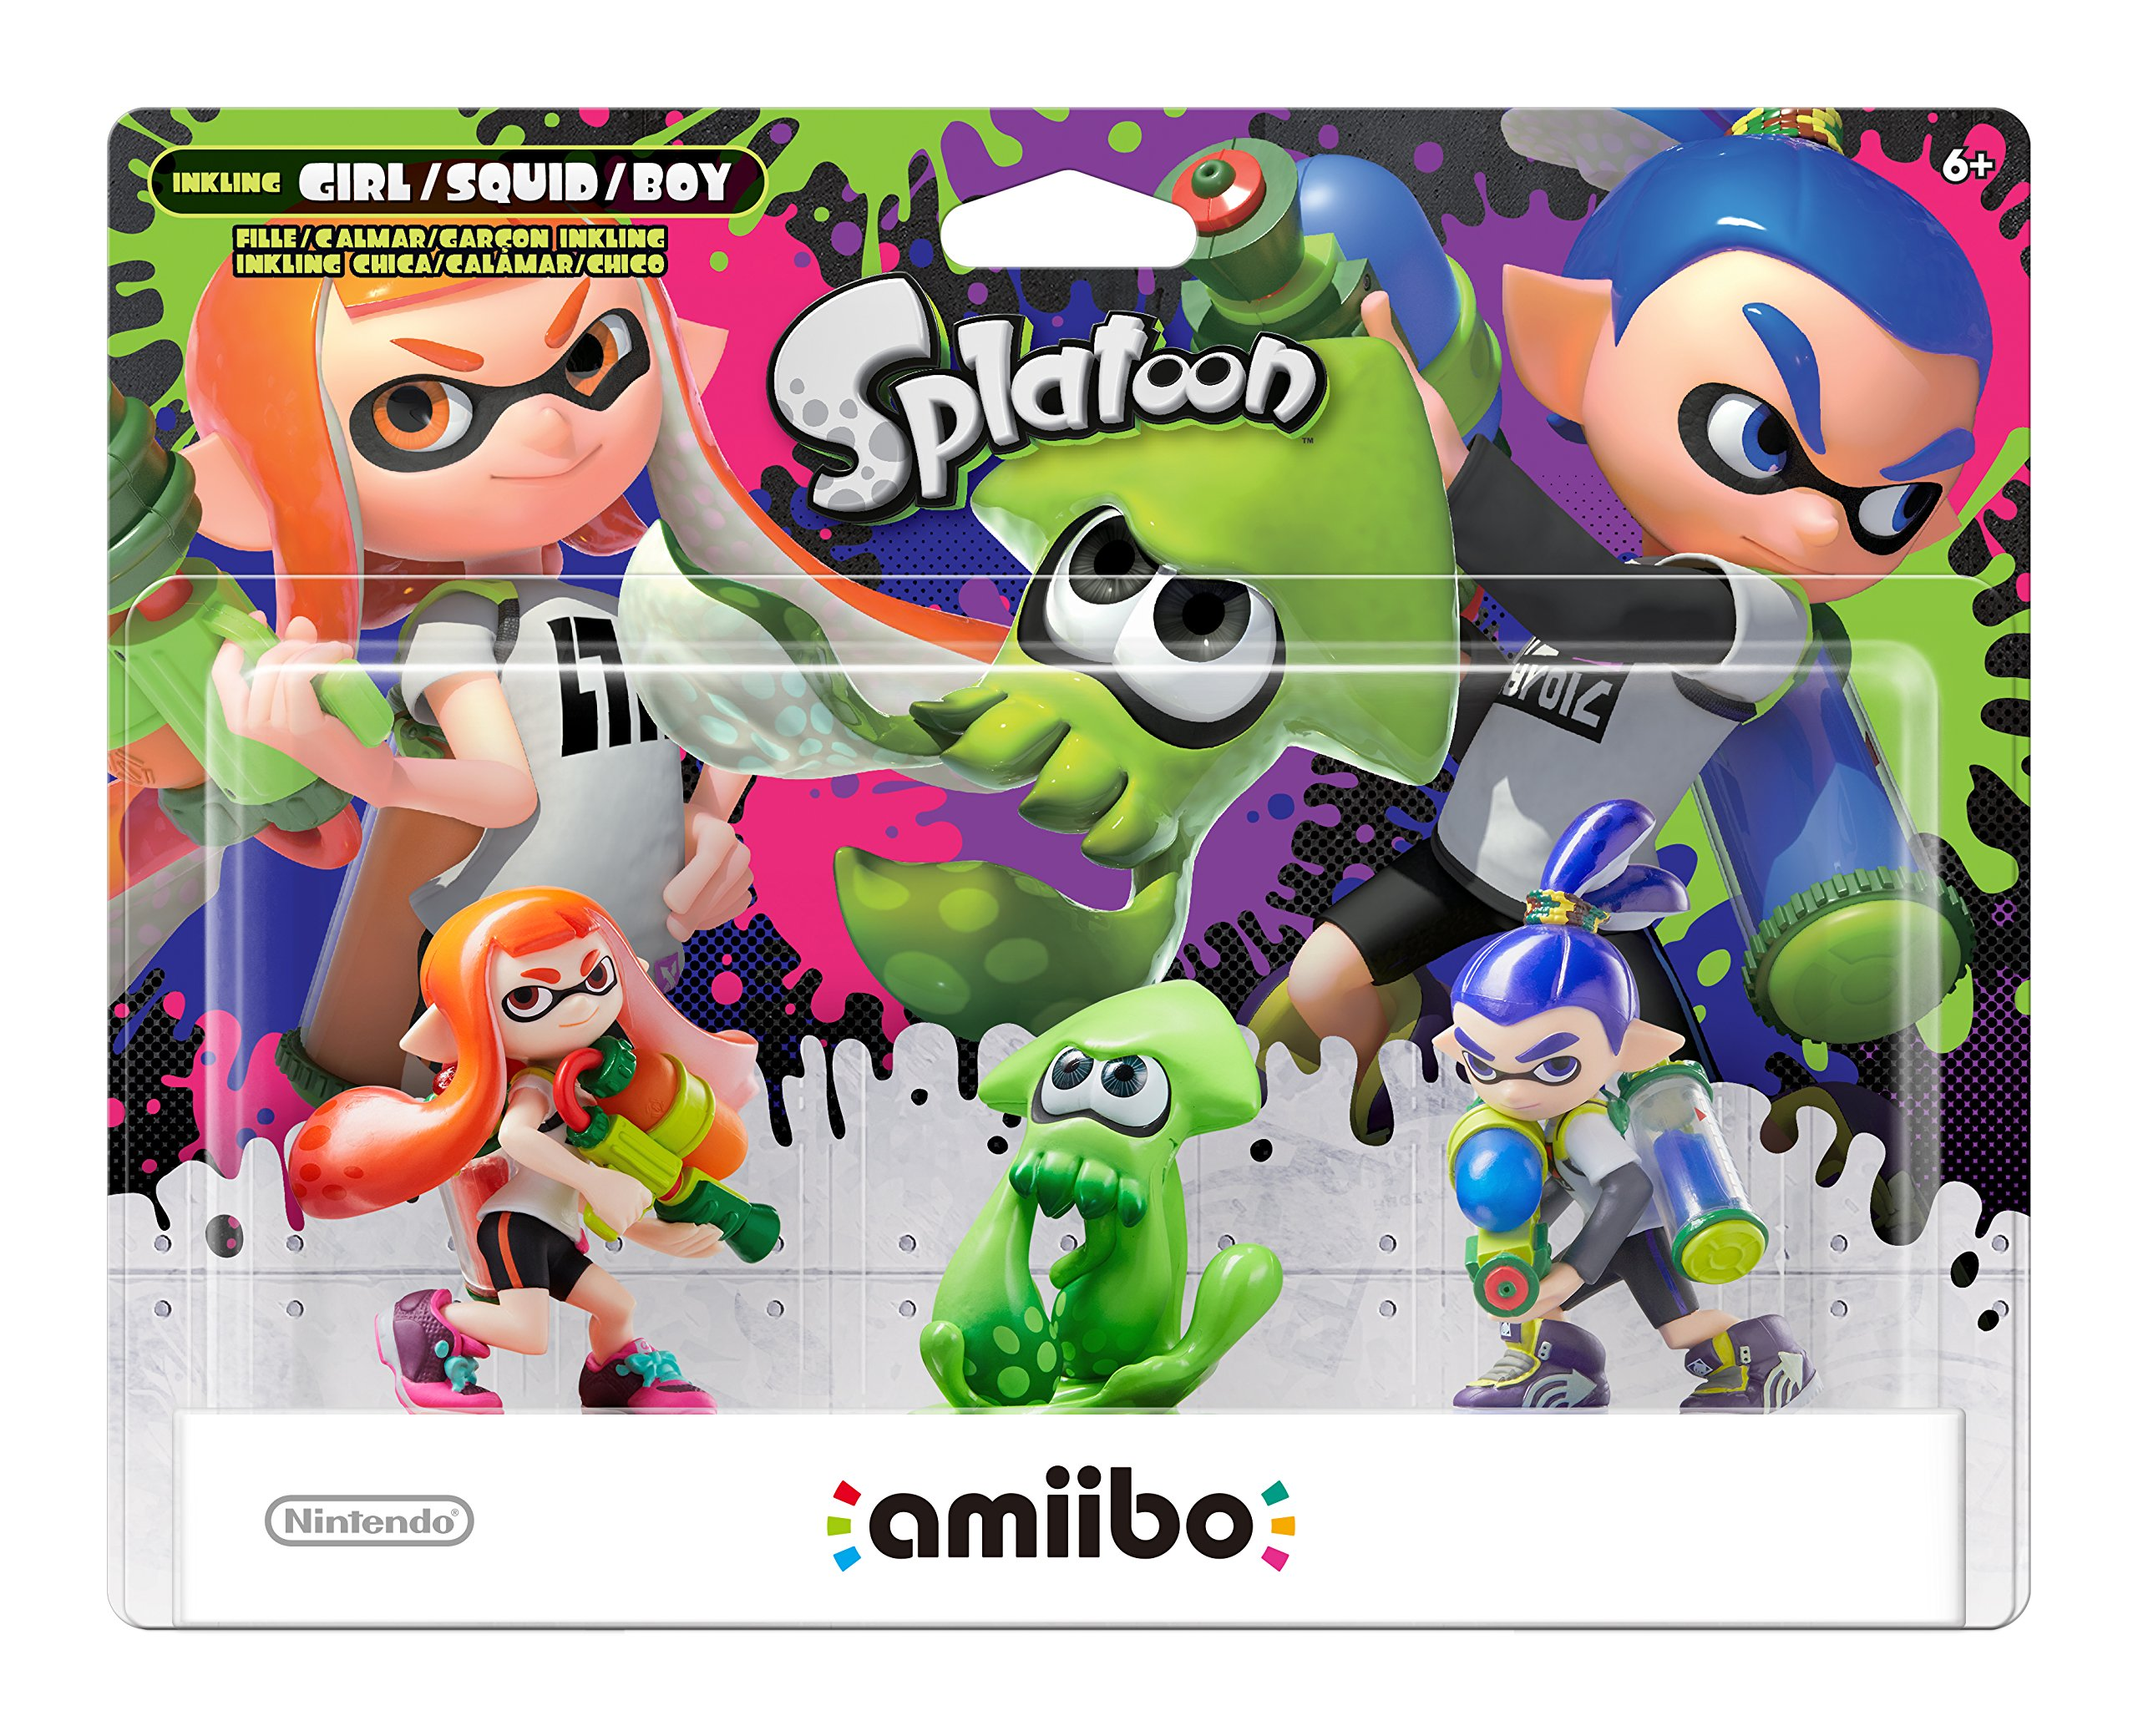 Splatoon 3-Pk, Splatoon Series, Nintendo amiibo, NVLEAE3A by Nintendo